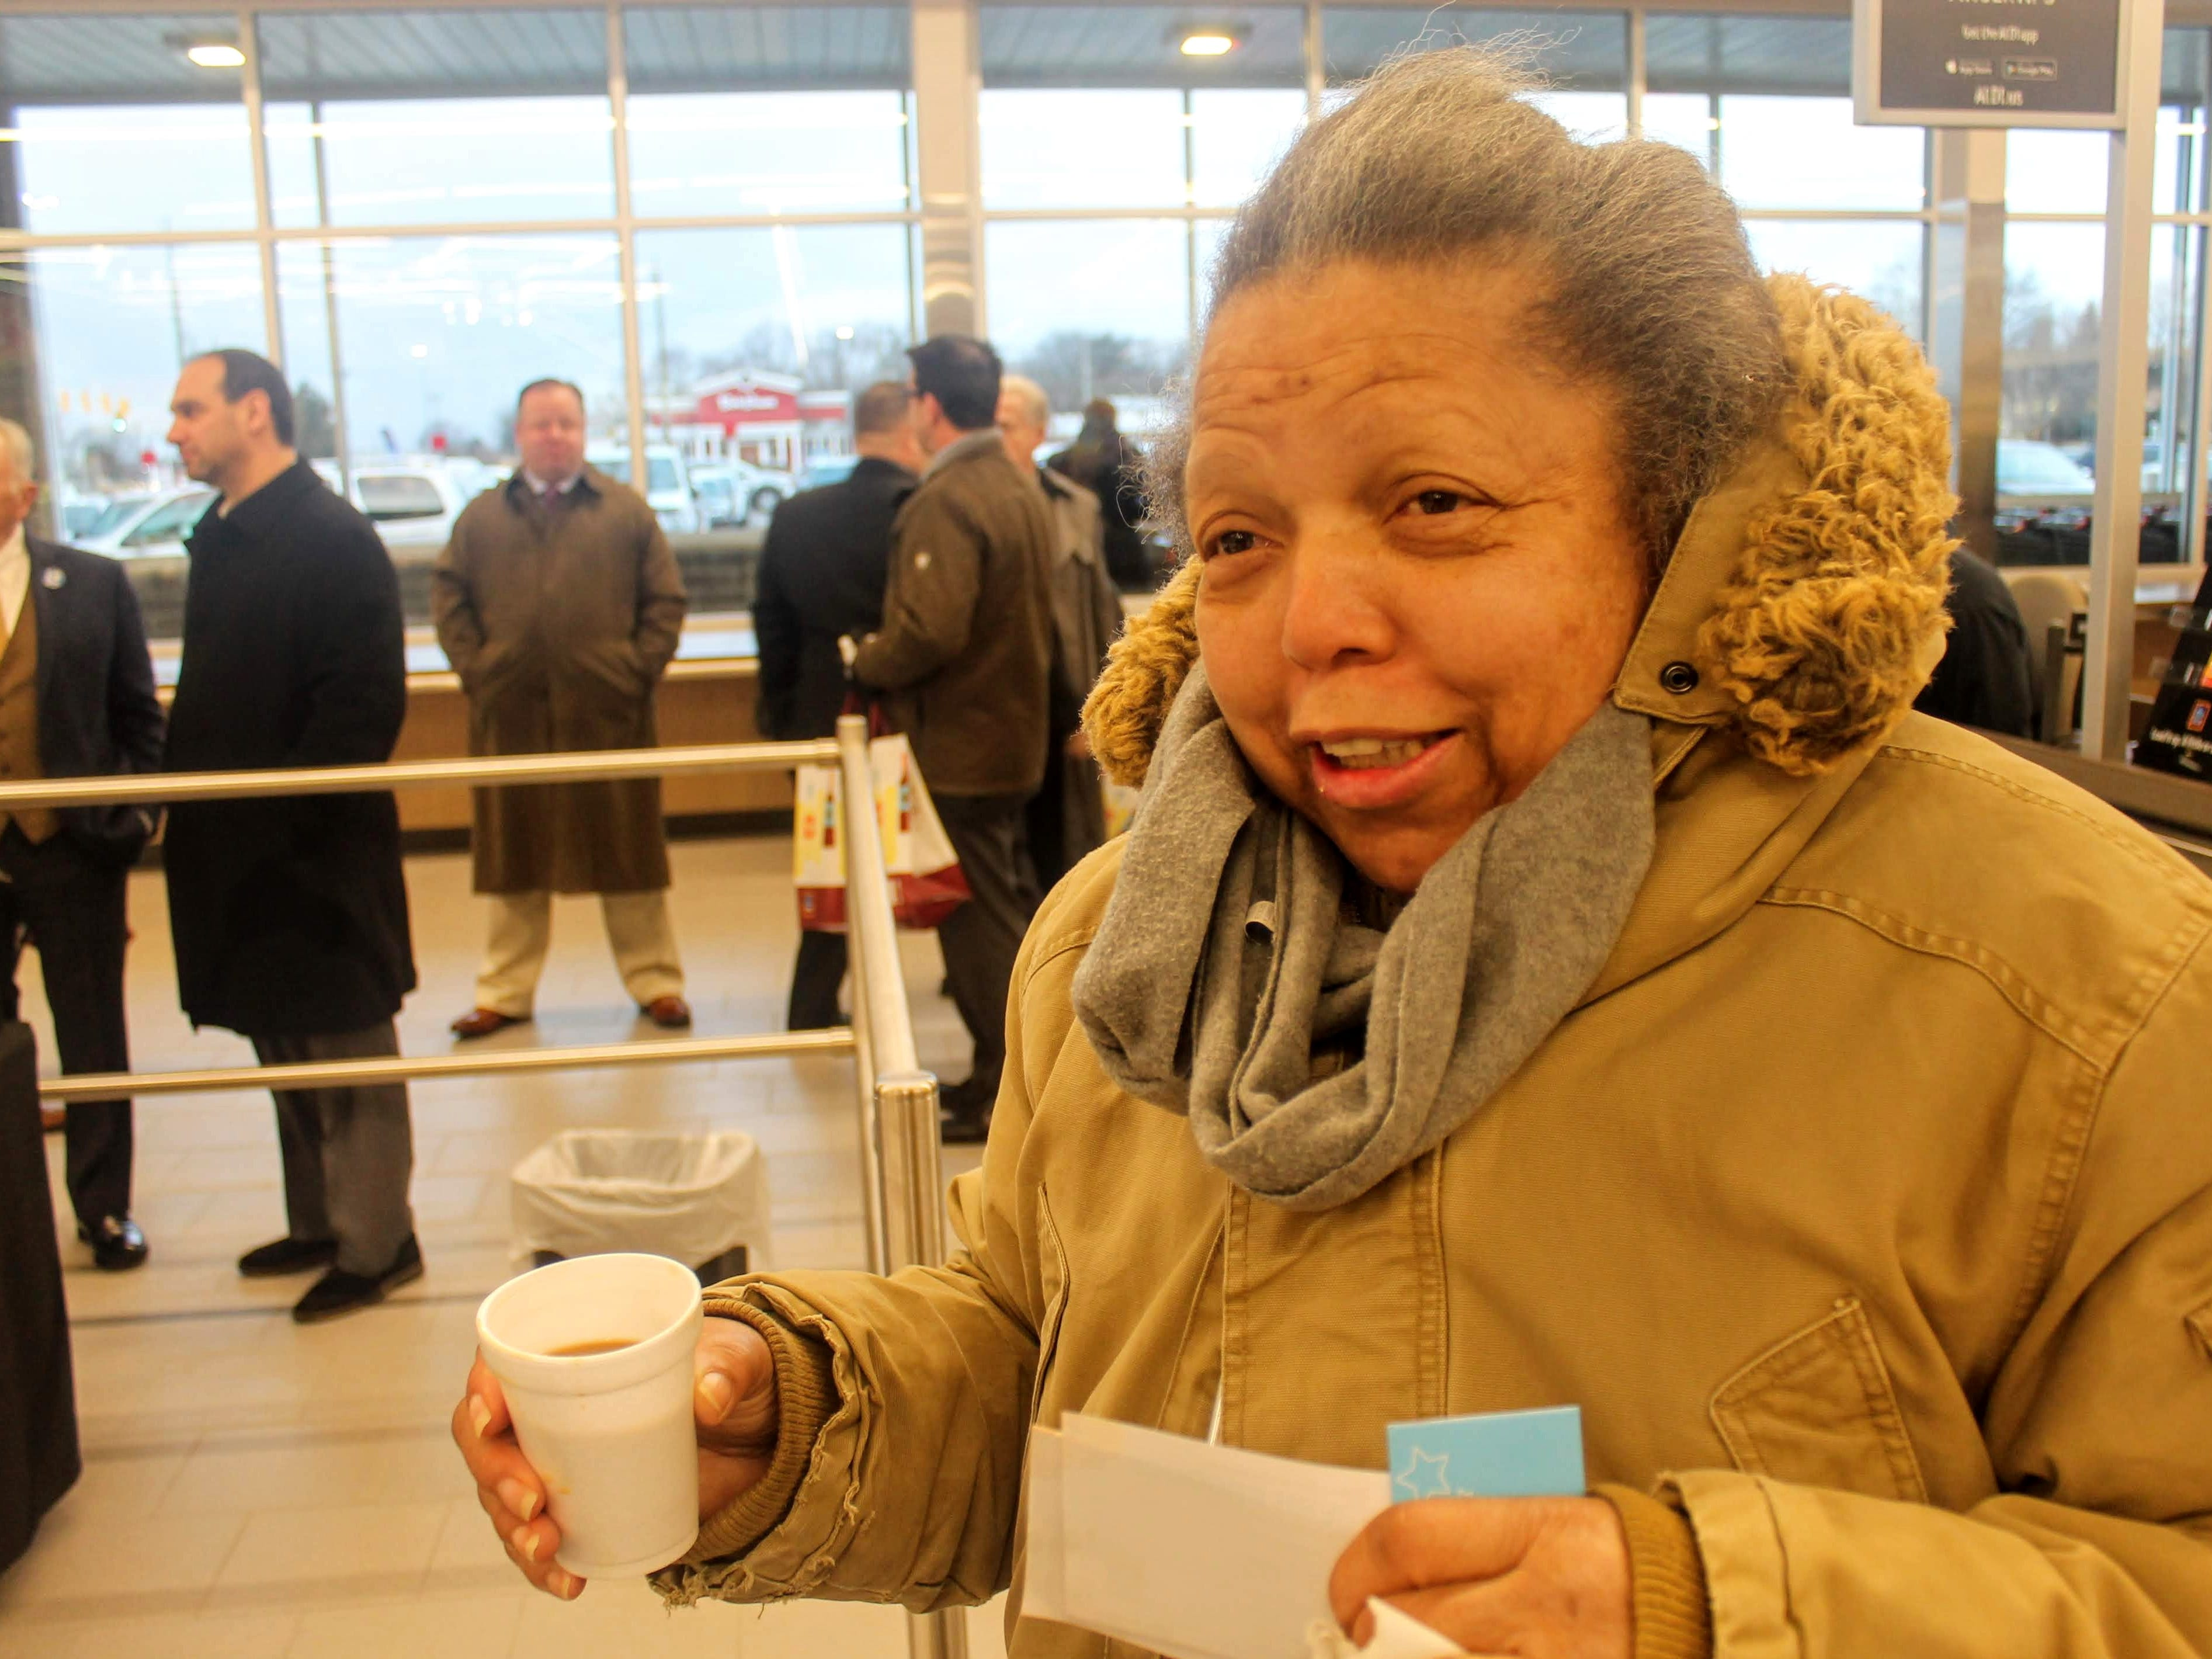 Detroit resident Pat Mitchell was first in line at the new Aldi in Livonia, which held its grand opening Thursday morning.